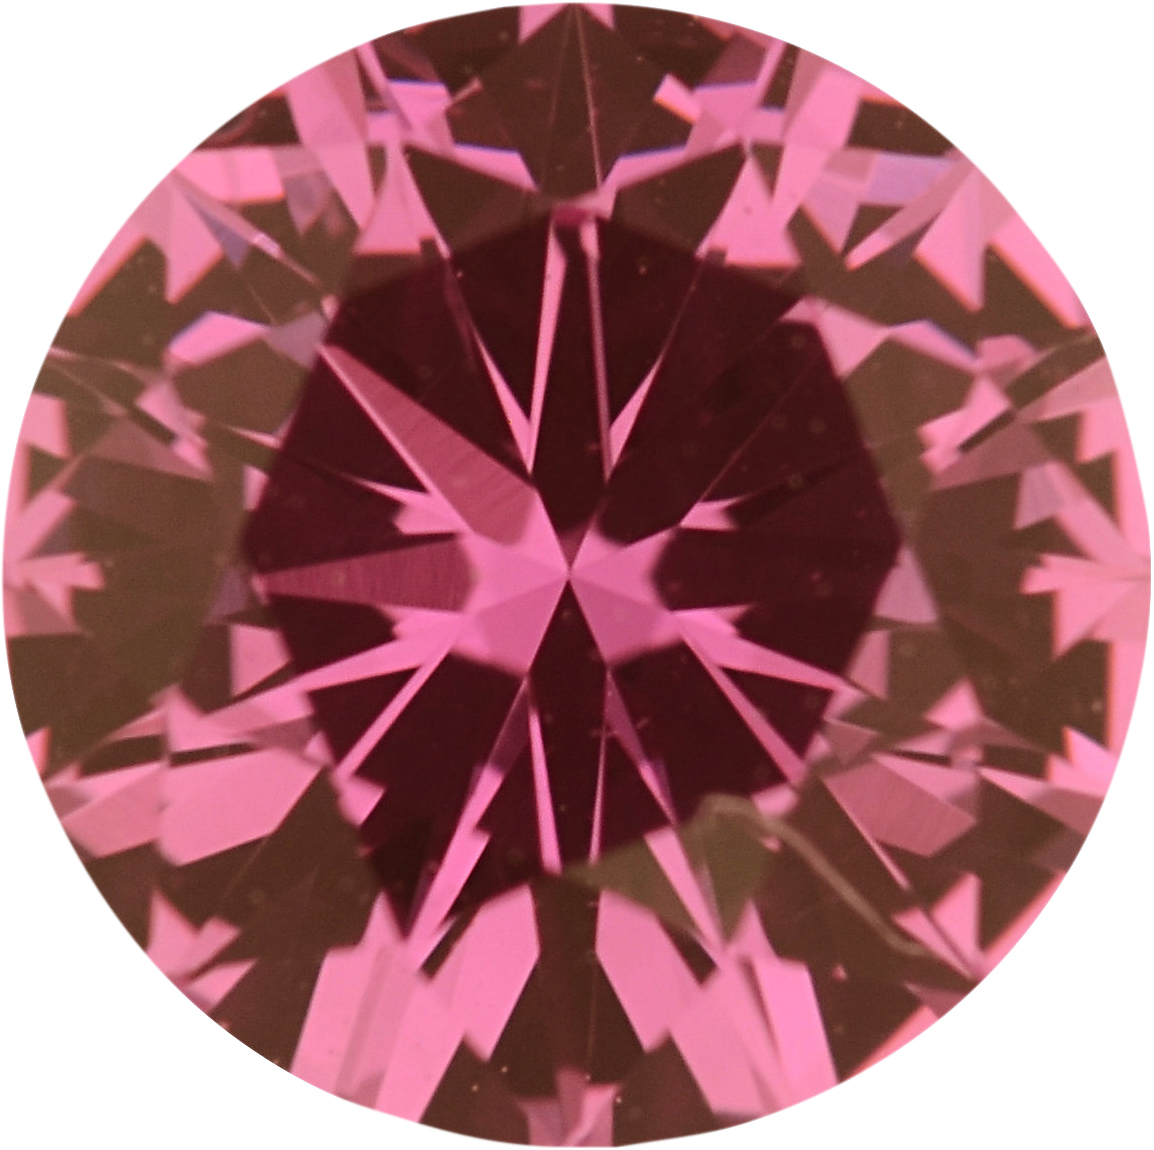 Quality Sapphire Loose Gem in Round Cut, Medium Red Purple, 5.86 mm, 0.84 Carats